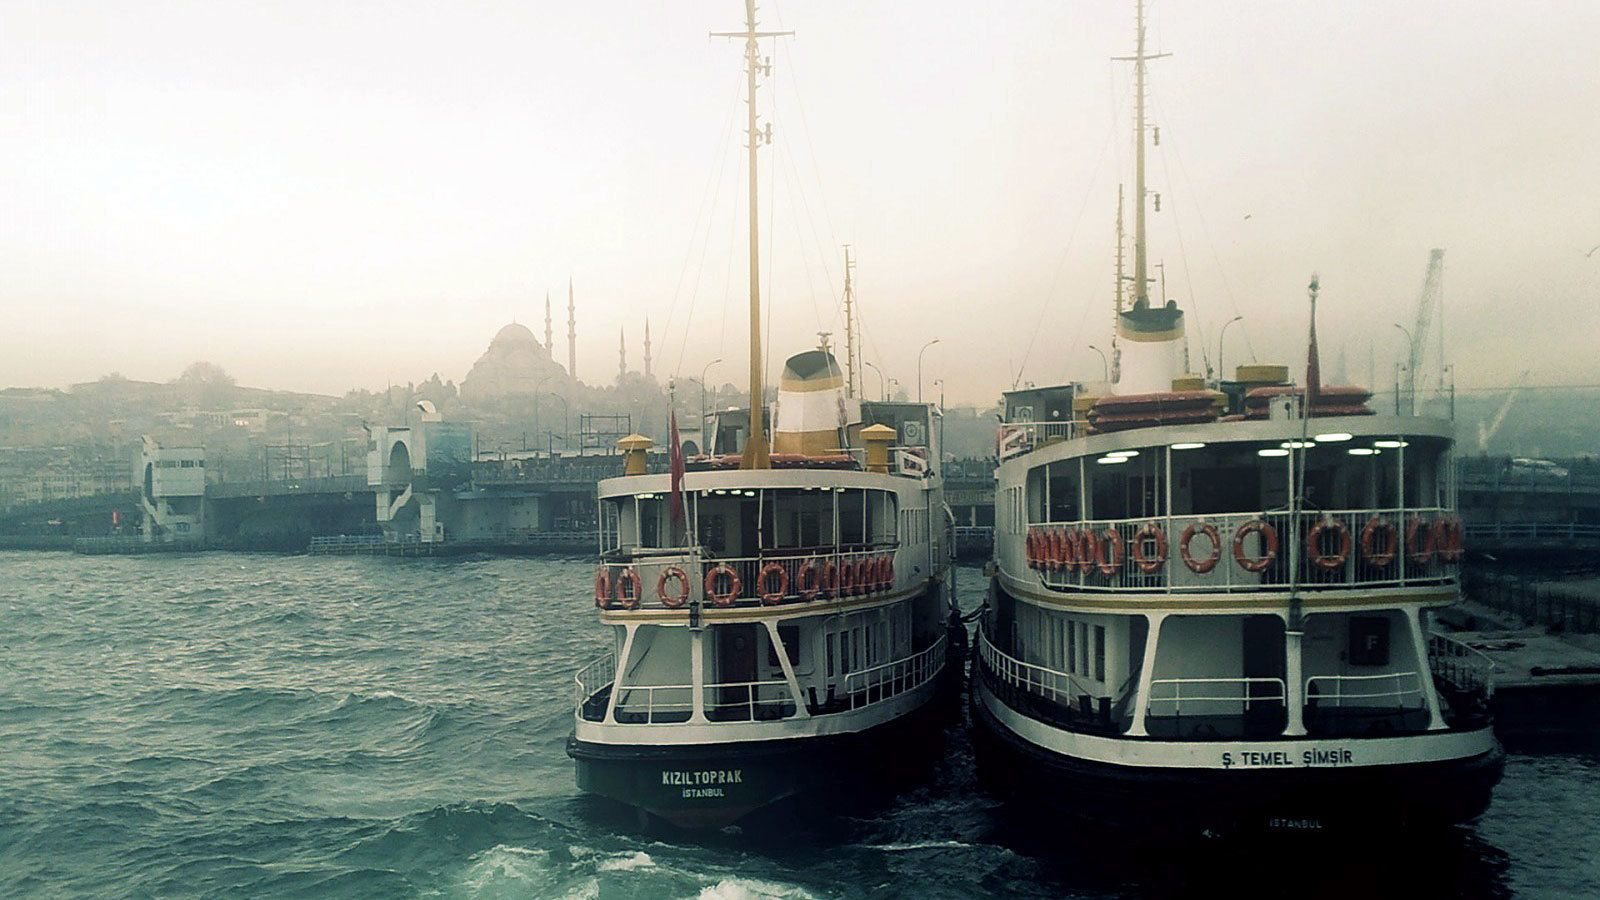 Two boats on the water in Istanbul